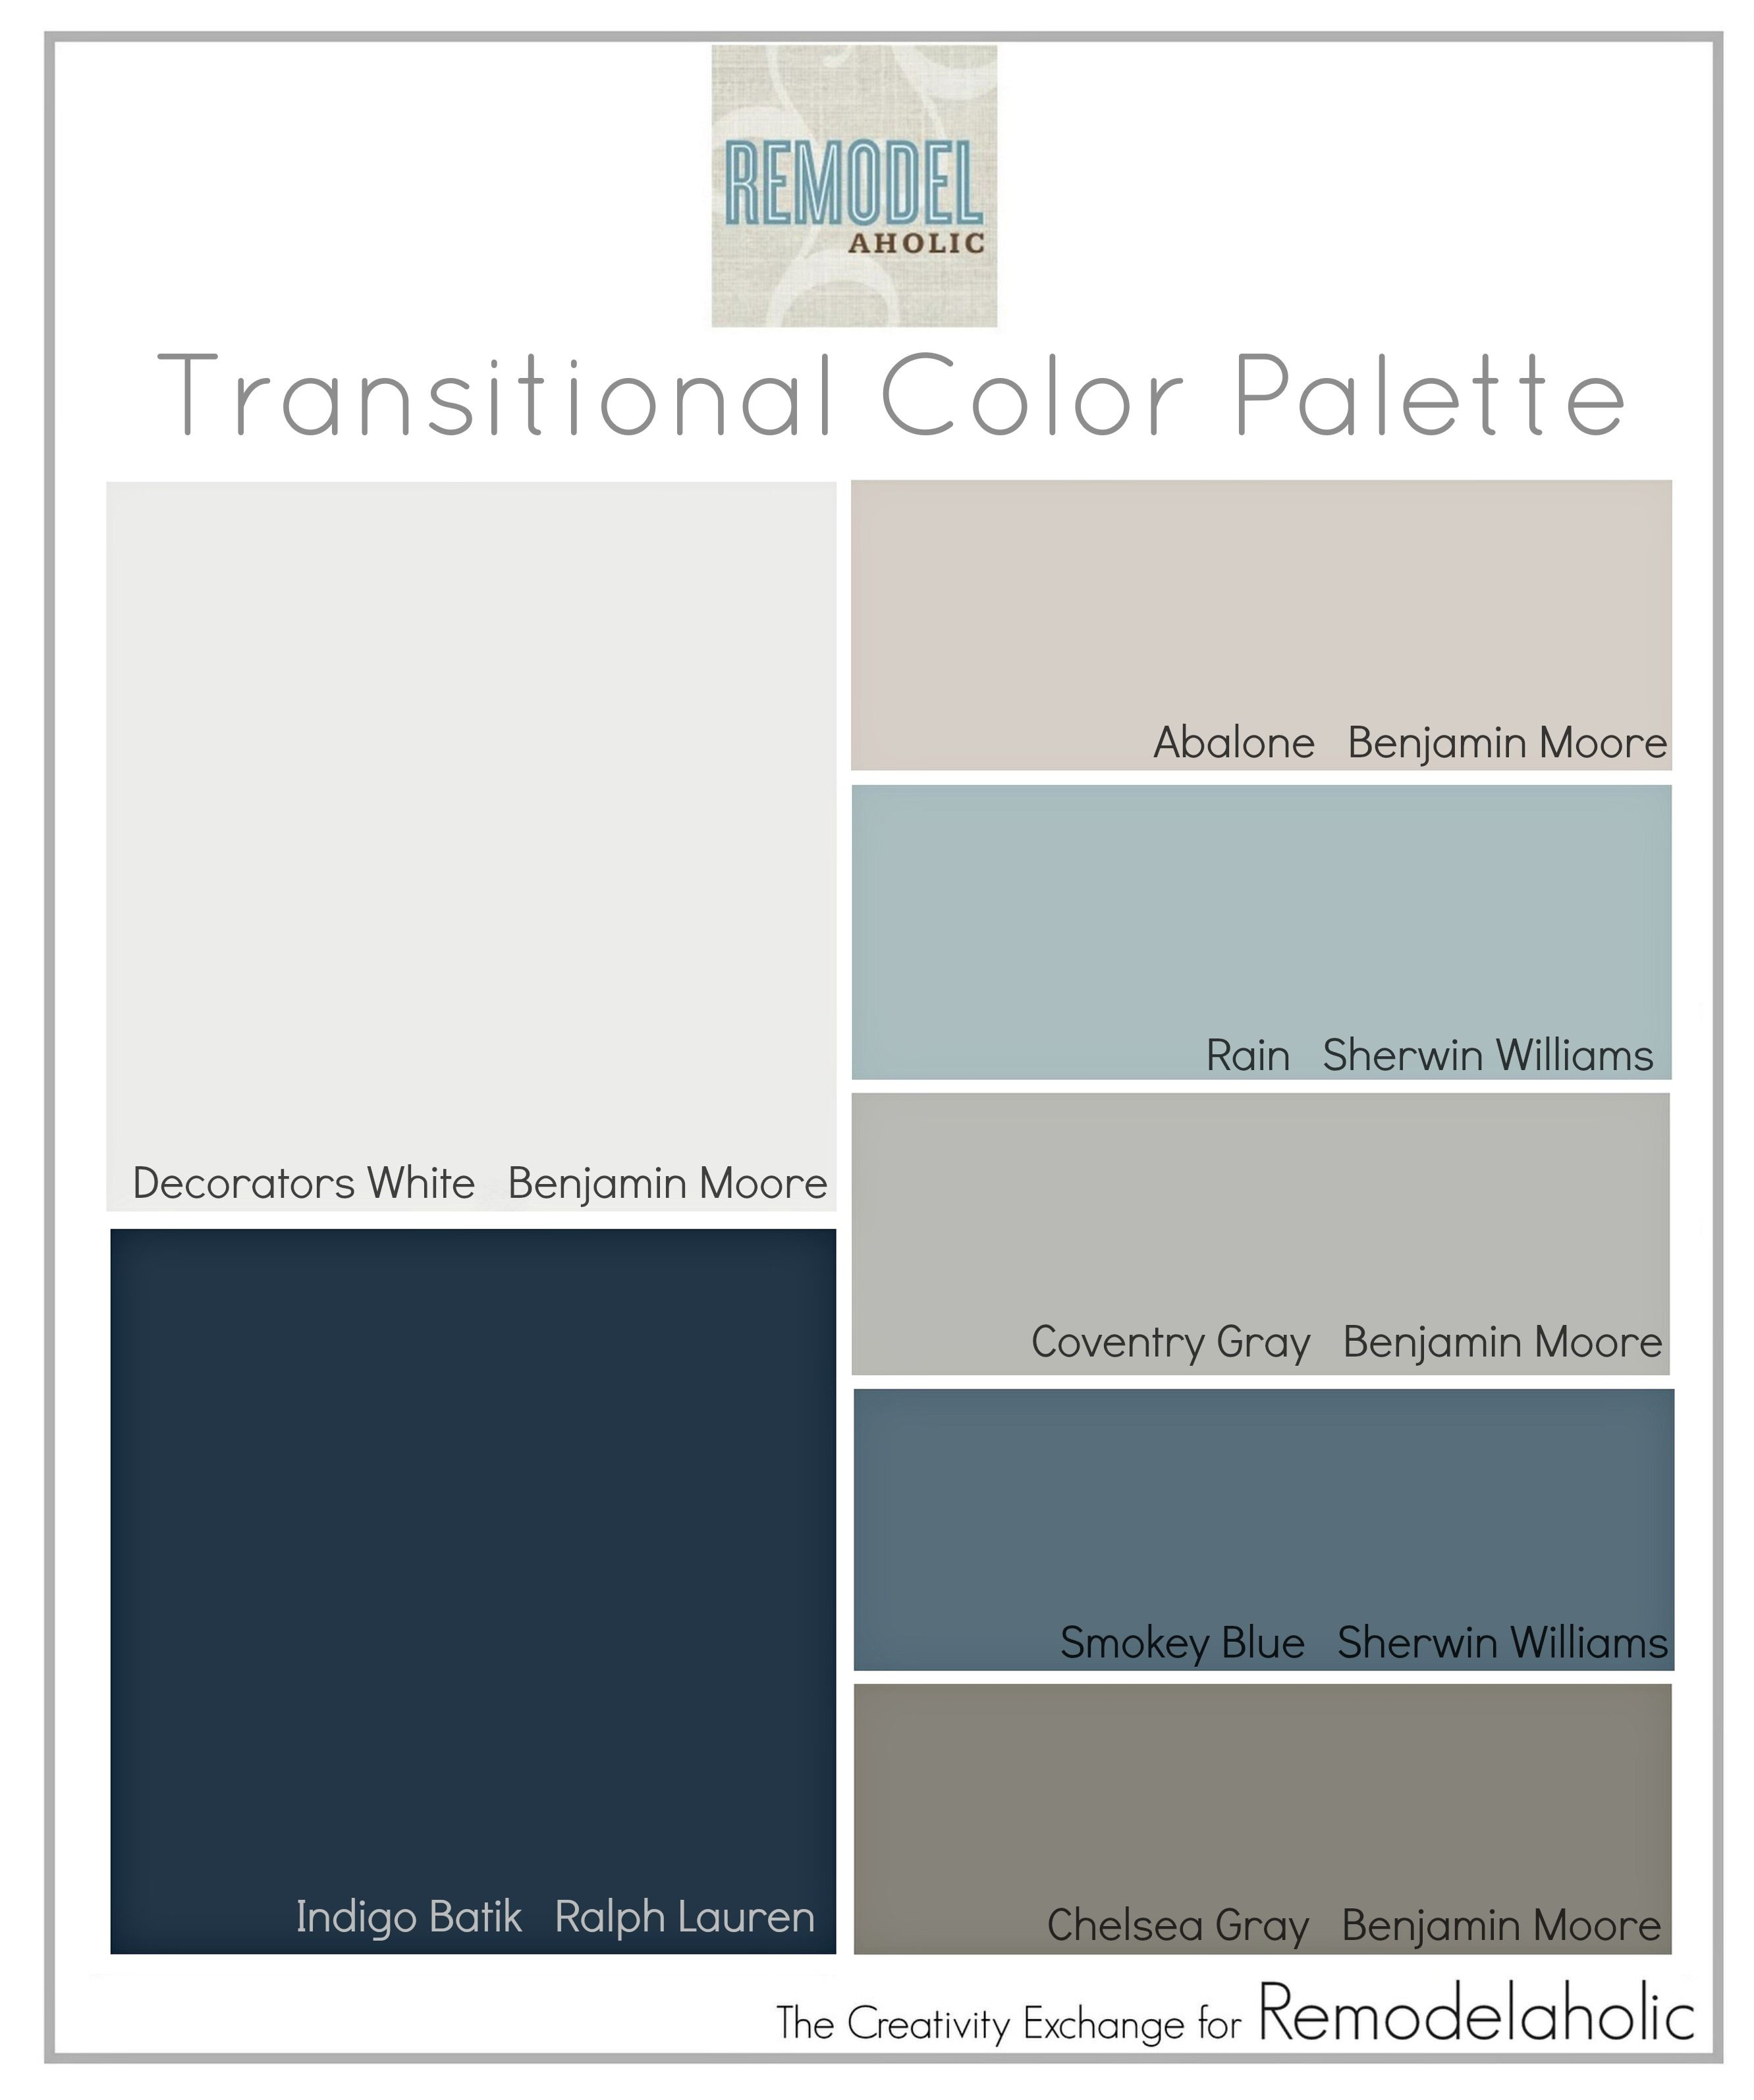 Transitional Color Palette Paint Colors That Are Great For Mixing Warm And Cool Tones Remodelaholic